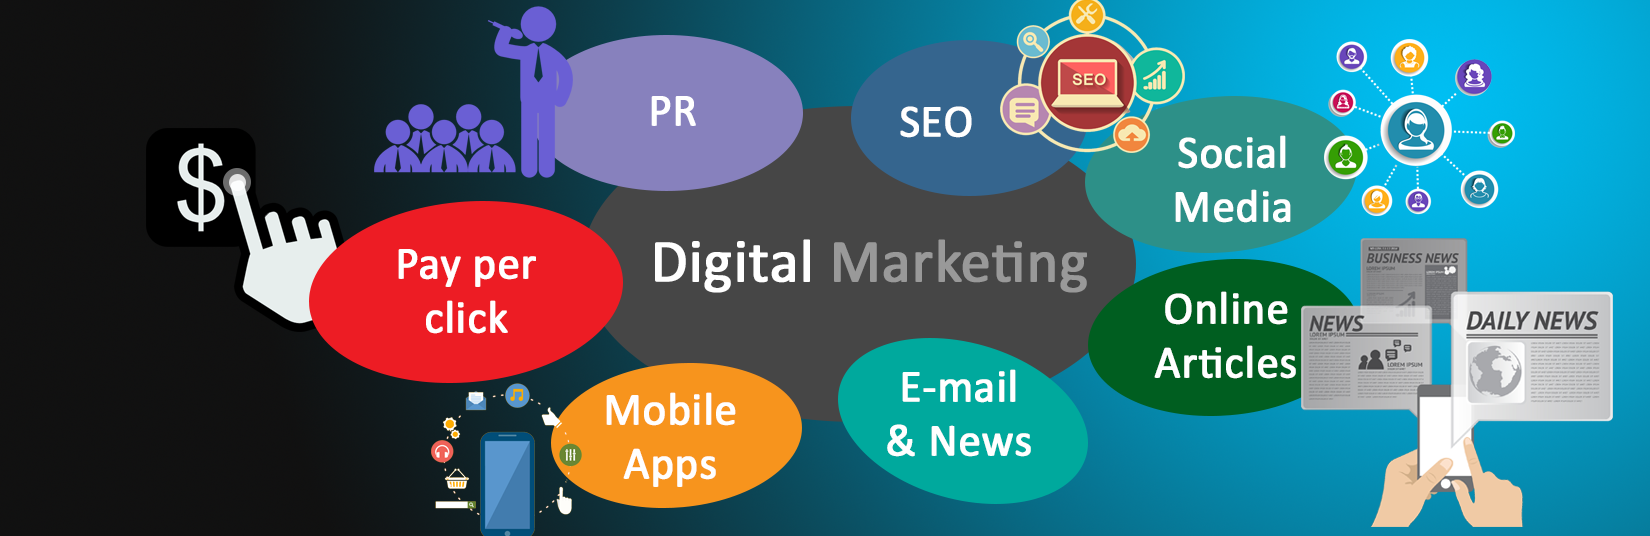 8 Things about Digital Marketing